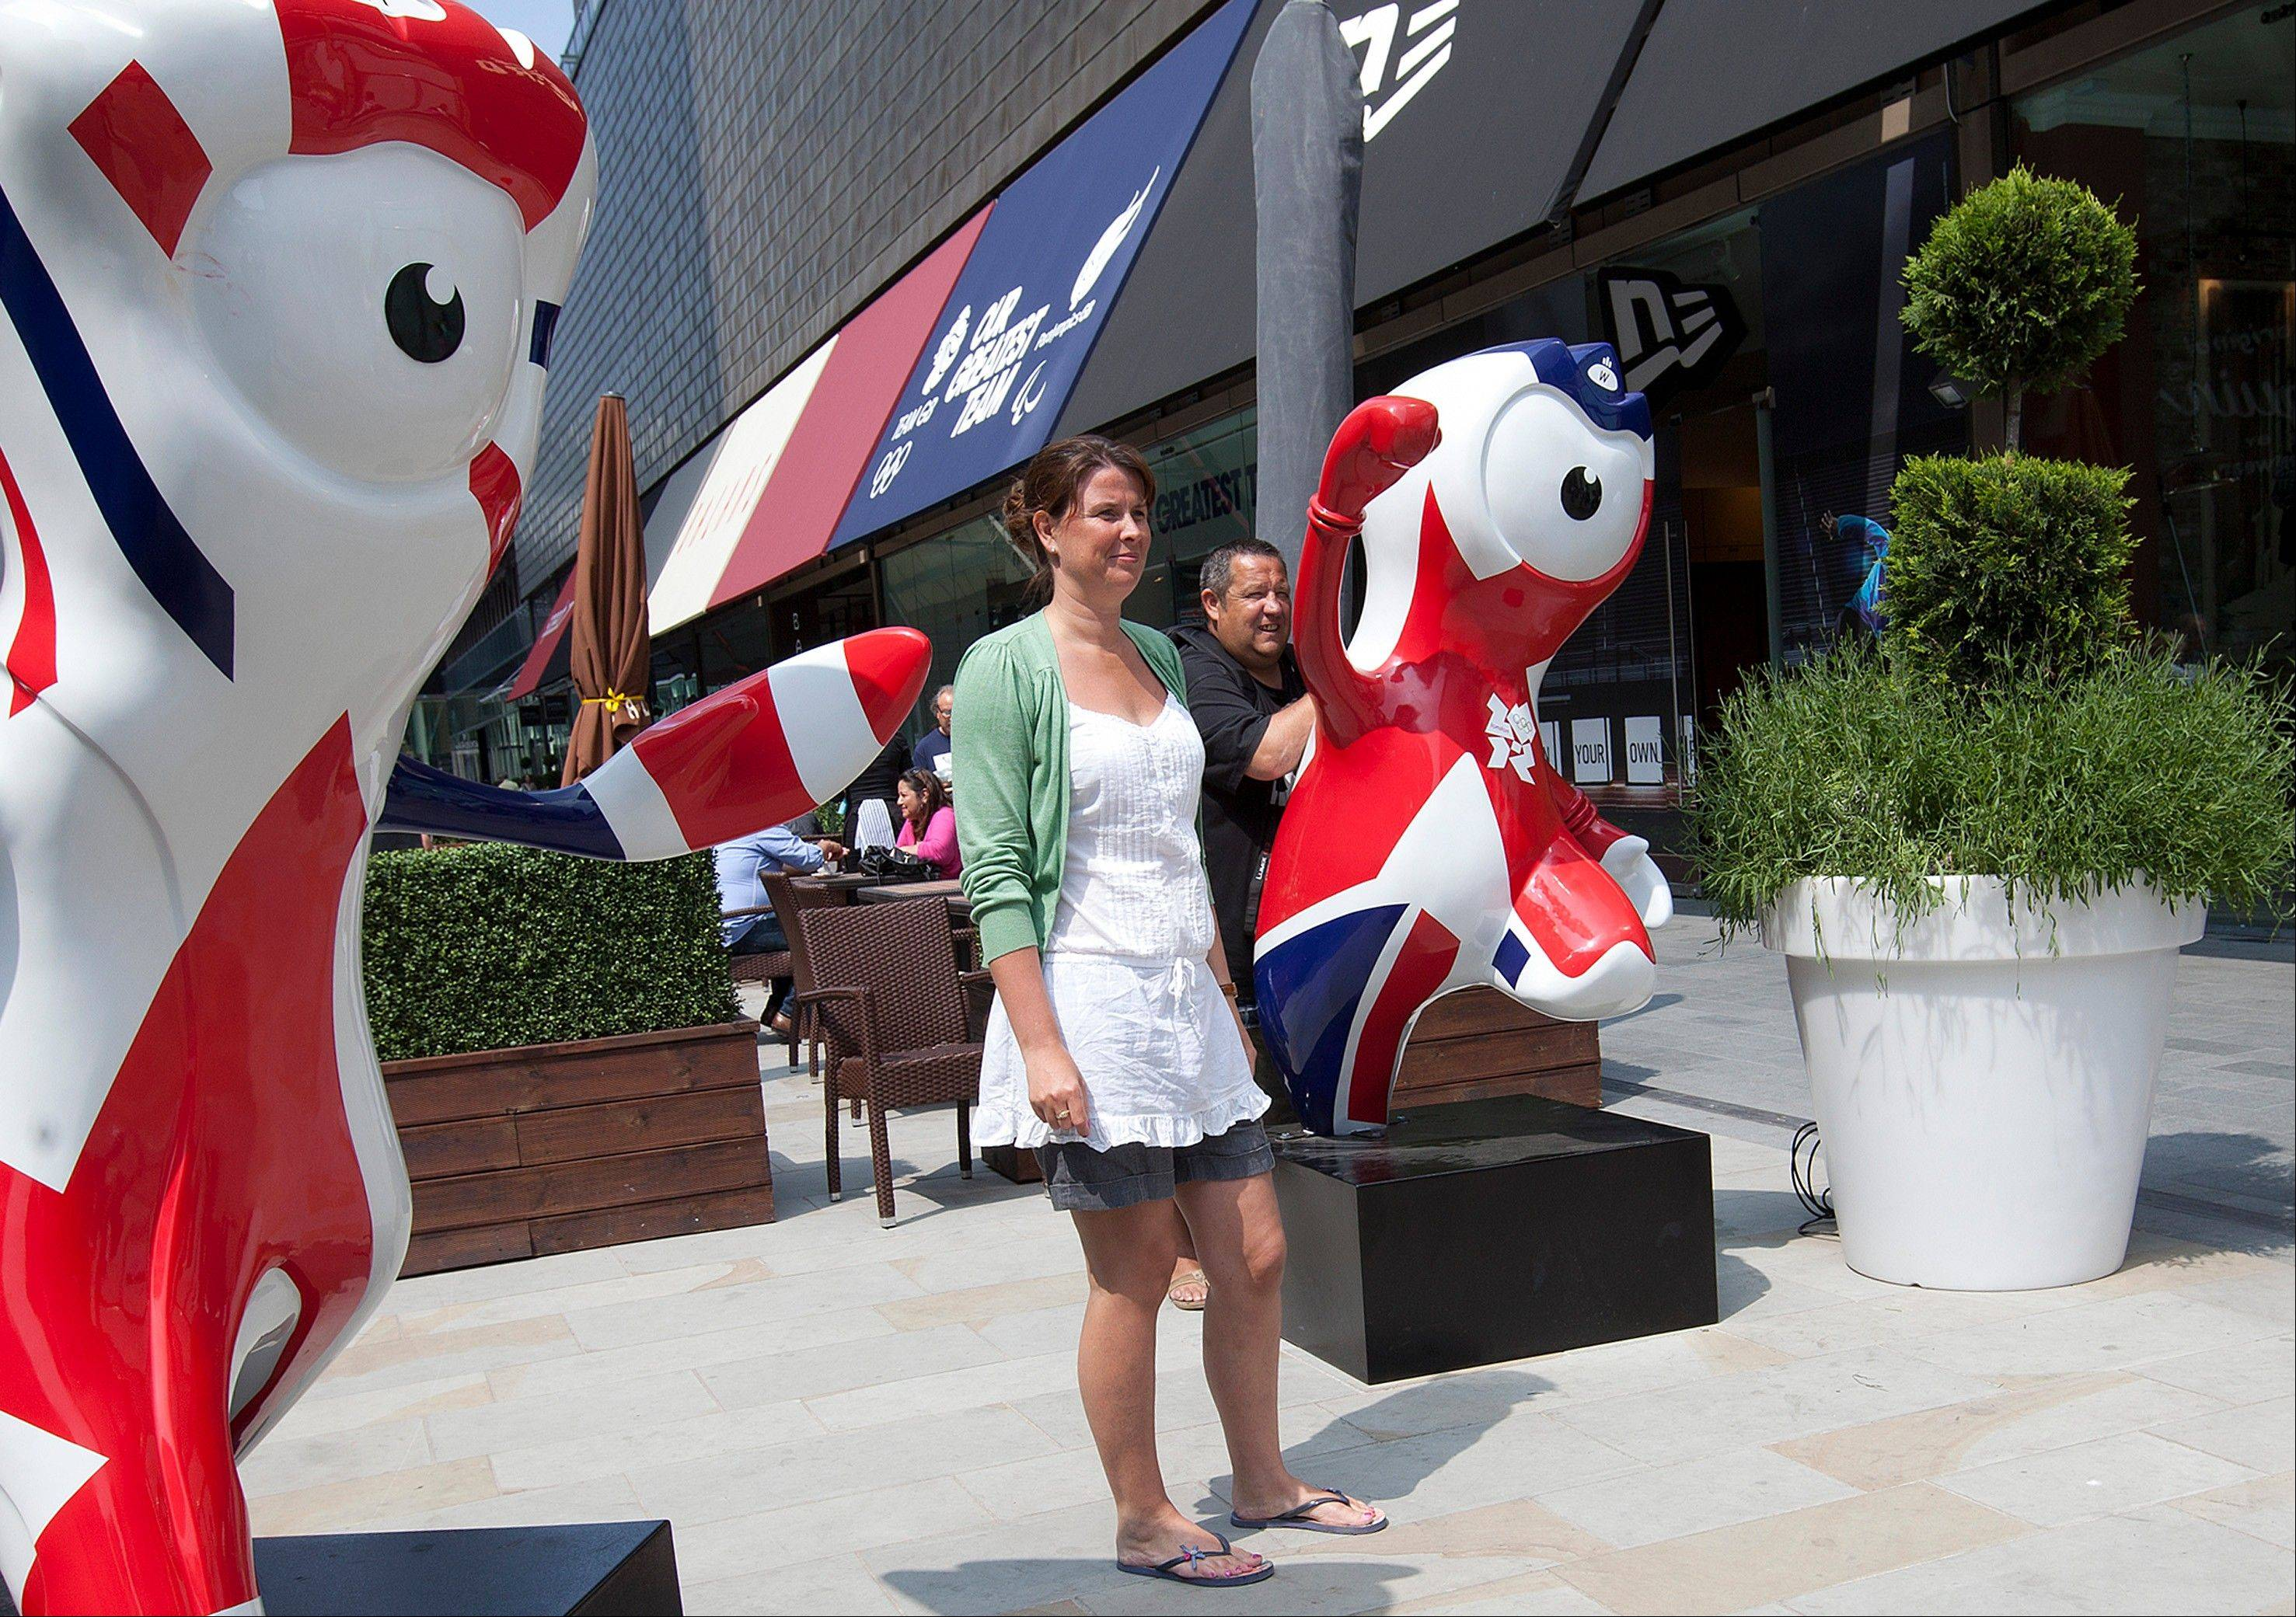 People pose for photographs beside the London 2012 Olympic Games mascots in a shopping mall next to the Olympic Park as final preparations are made ahead of the games in east London.